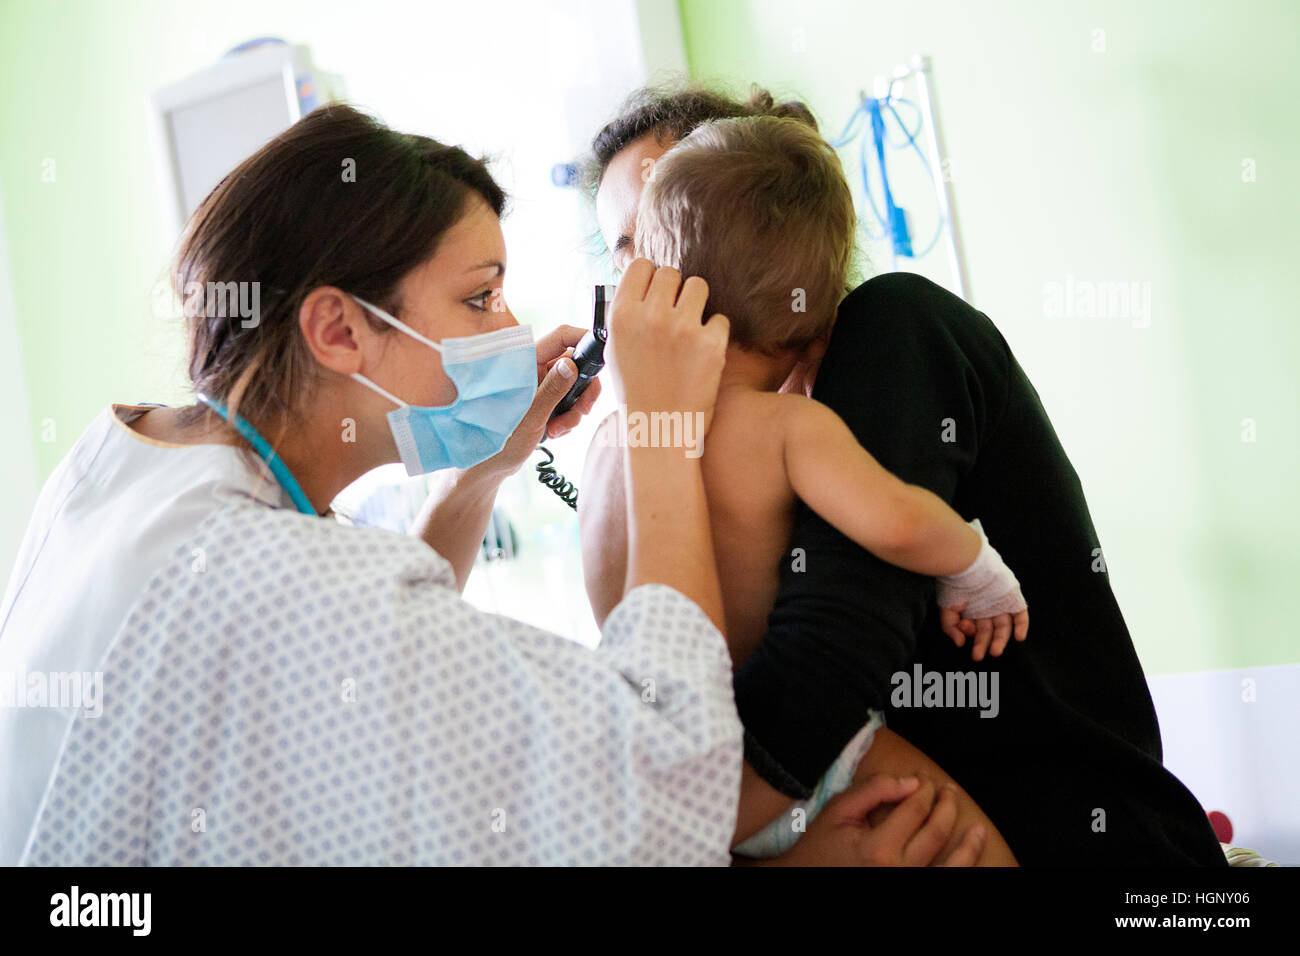 PEDIATRIC EMERGENCY UNIT - Stock Image